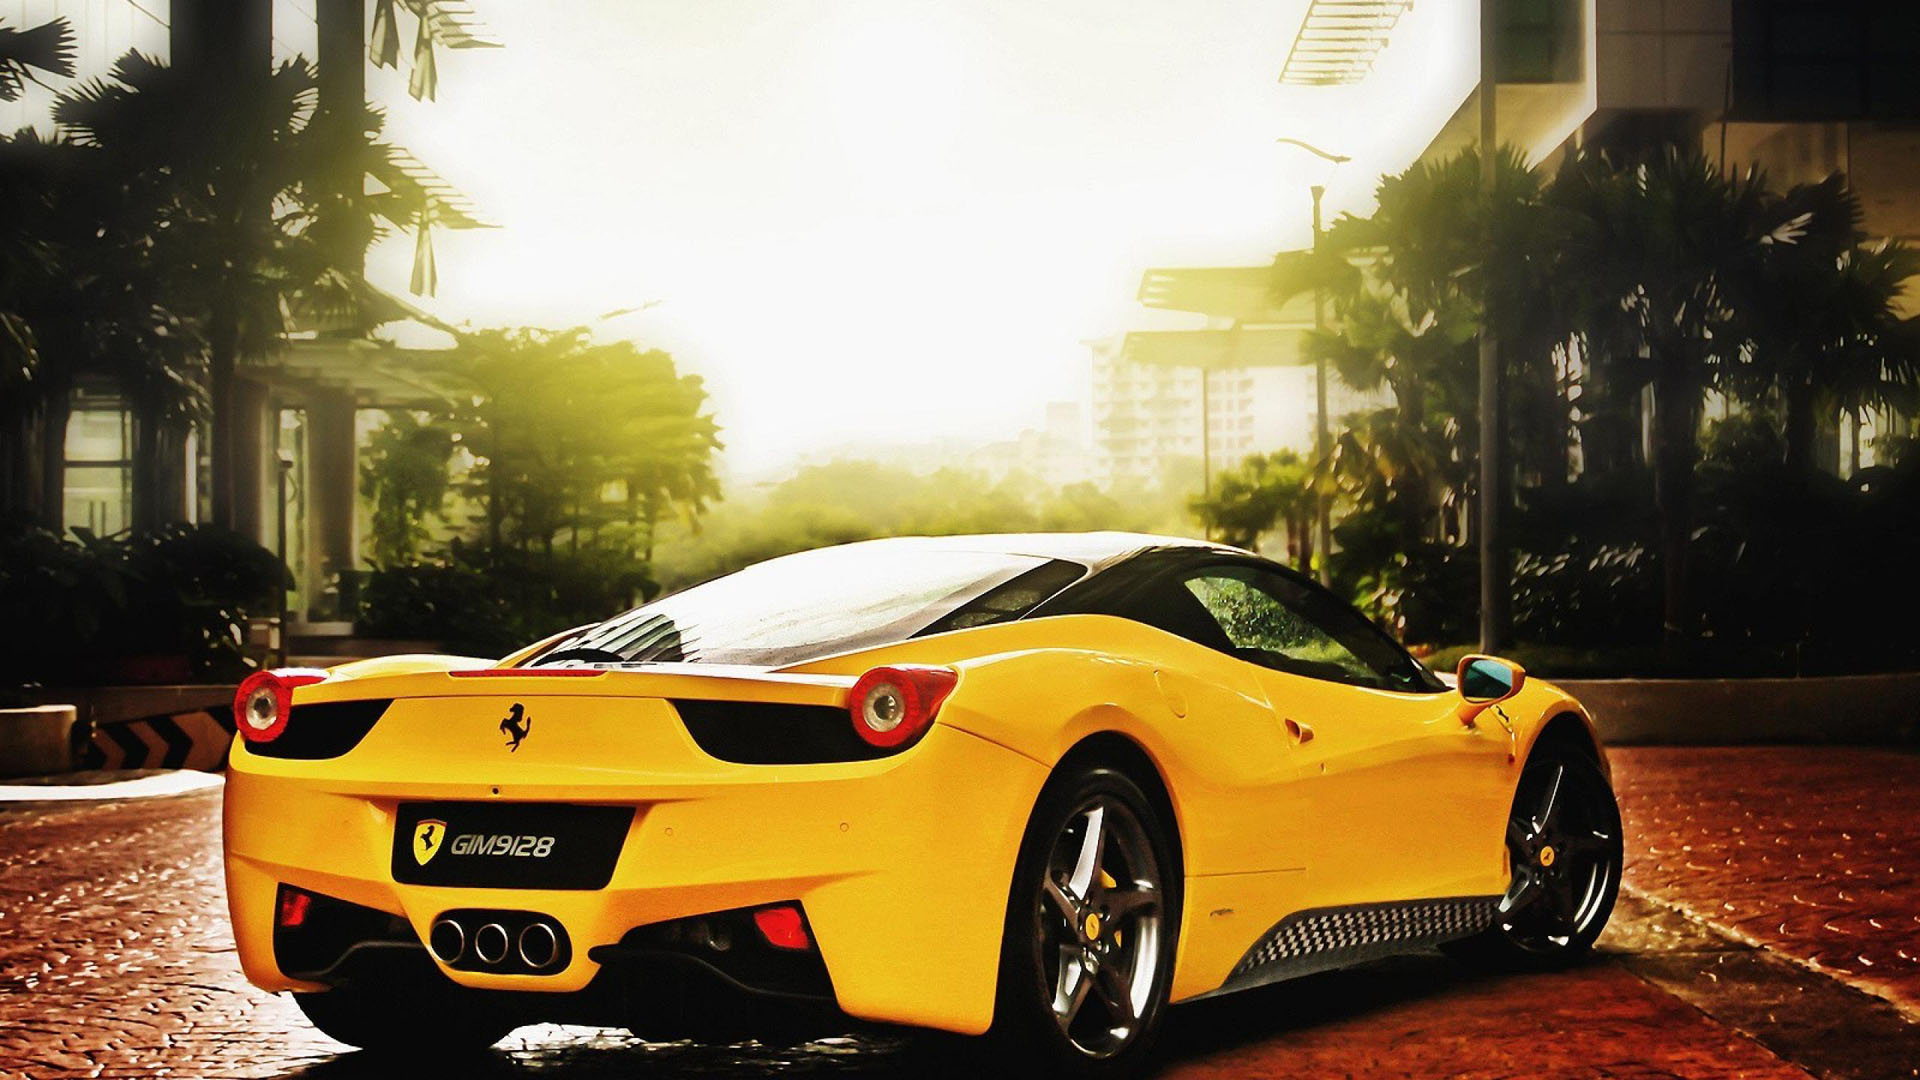 Download Ferrari Free Awesome Yellow Wallpaper Full Hd 1920x1080px